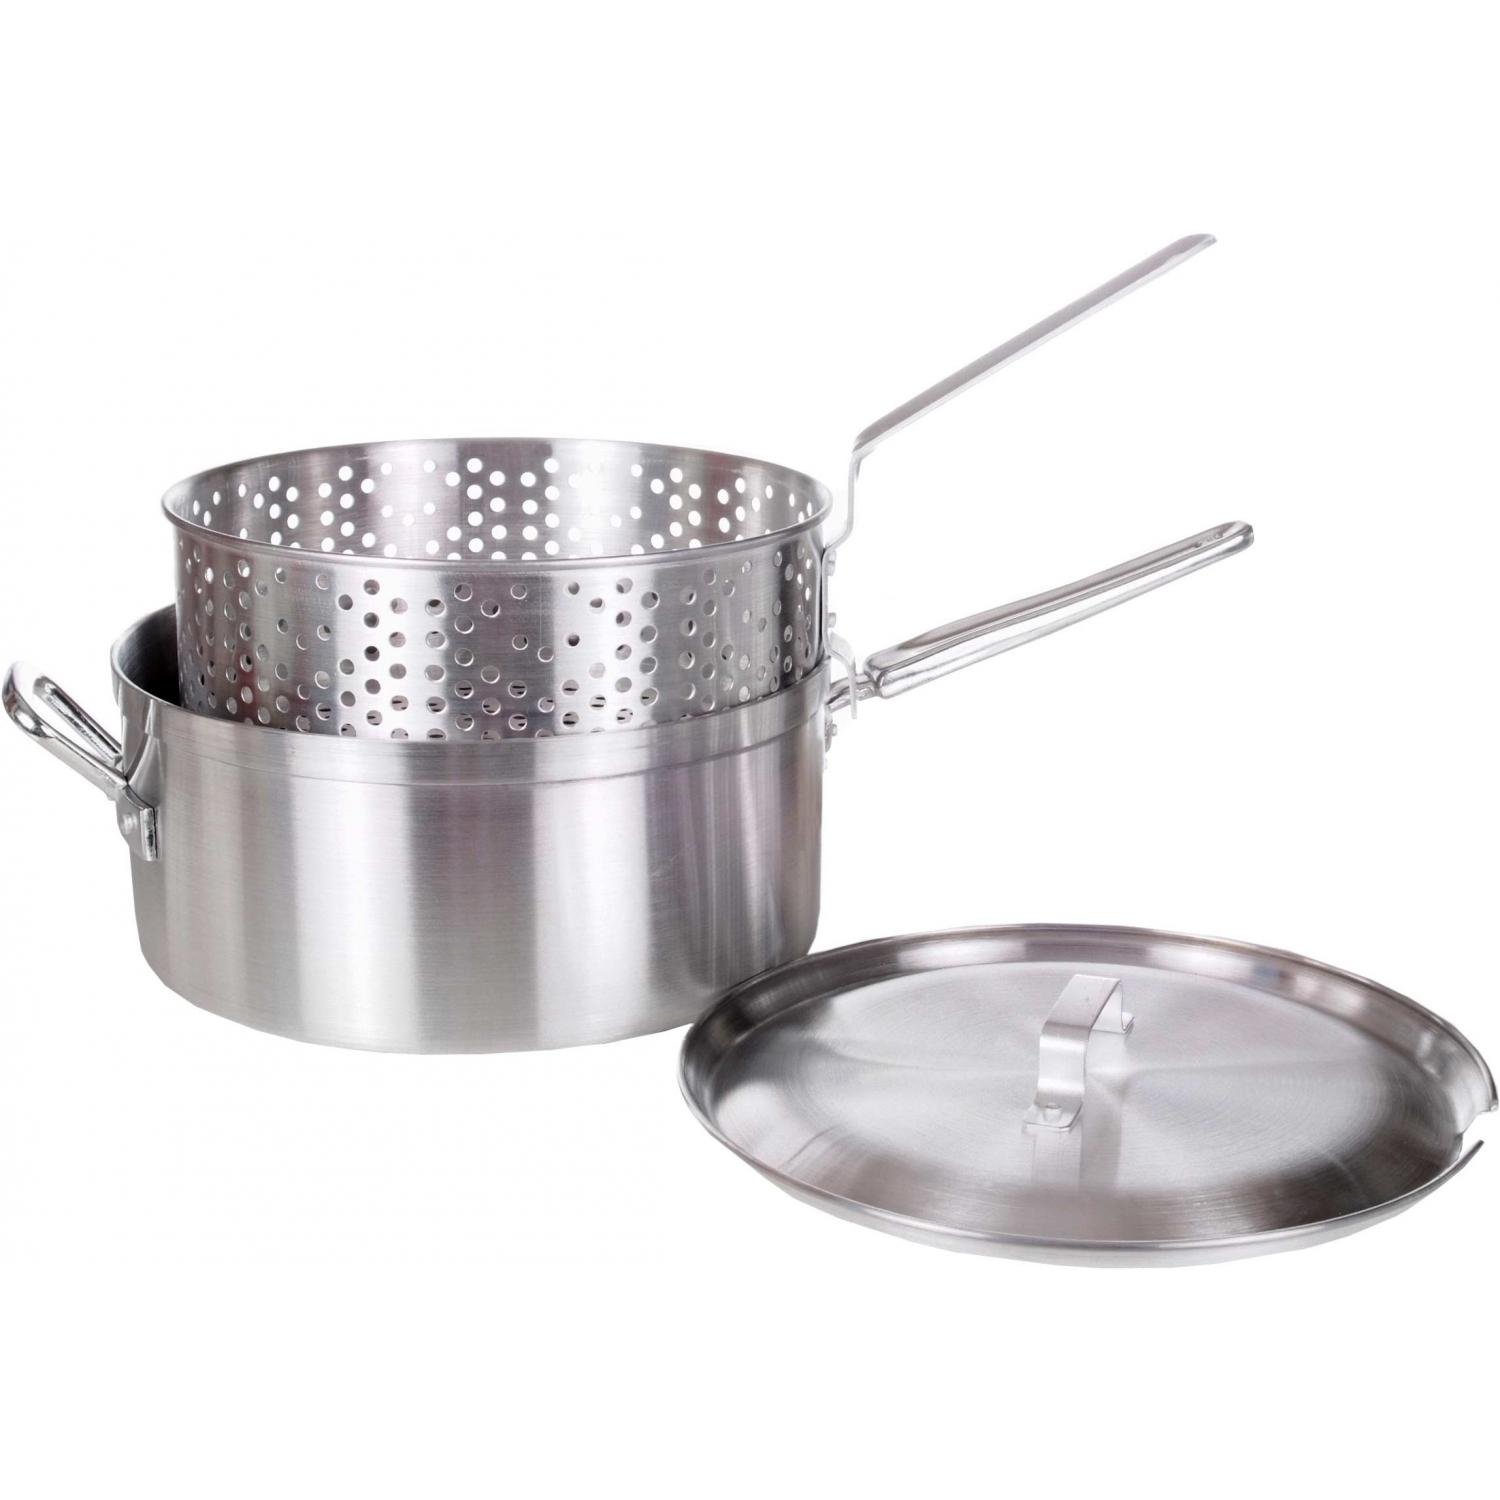 10175 12 Deep Fry Pot W Perforated Aluminum Basket